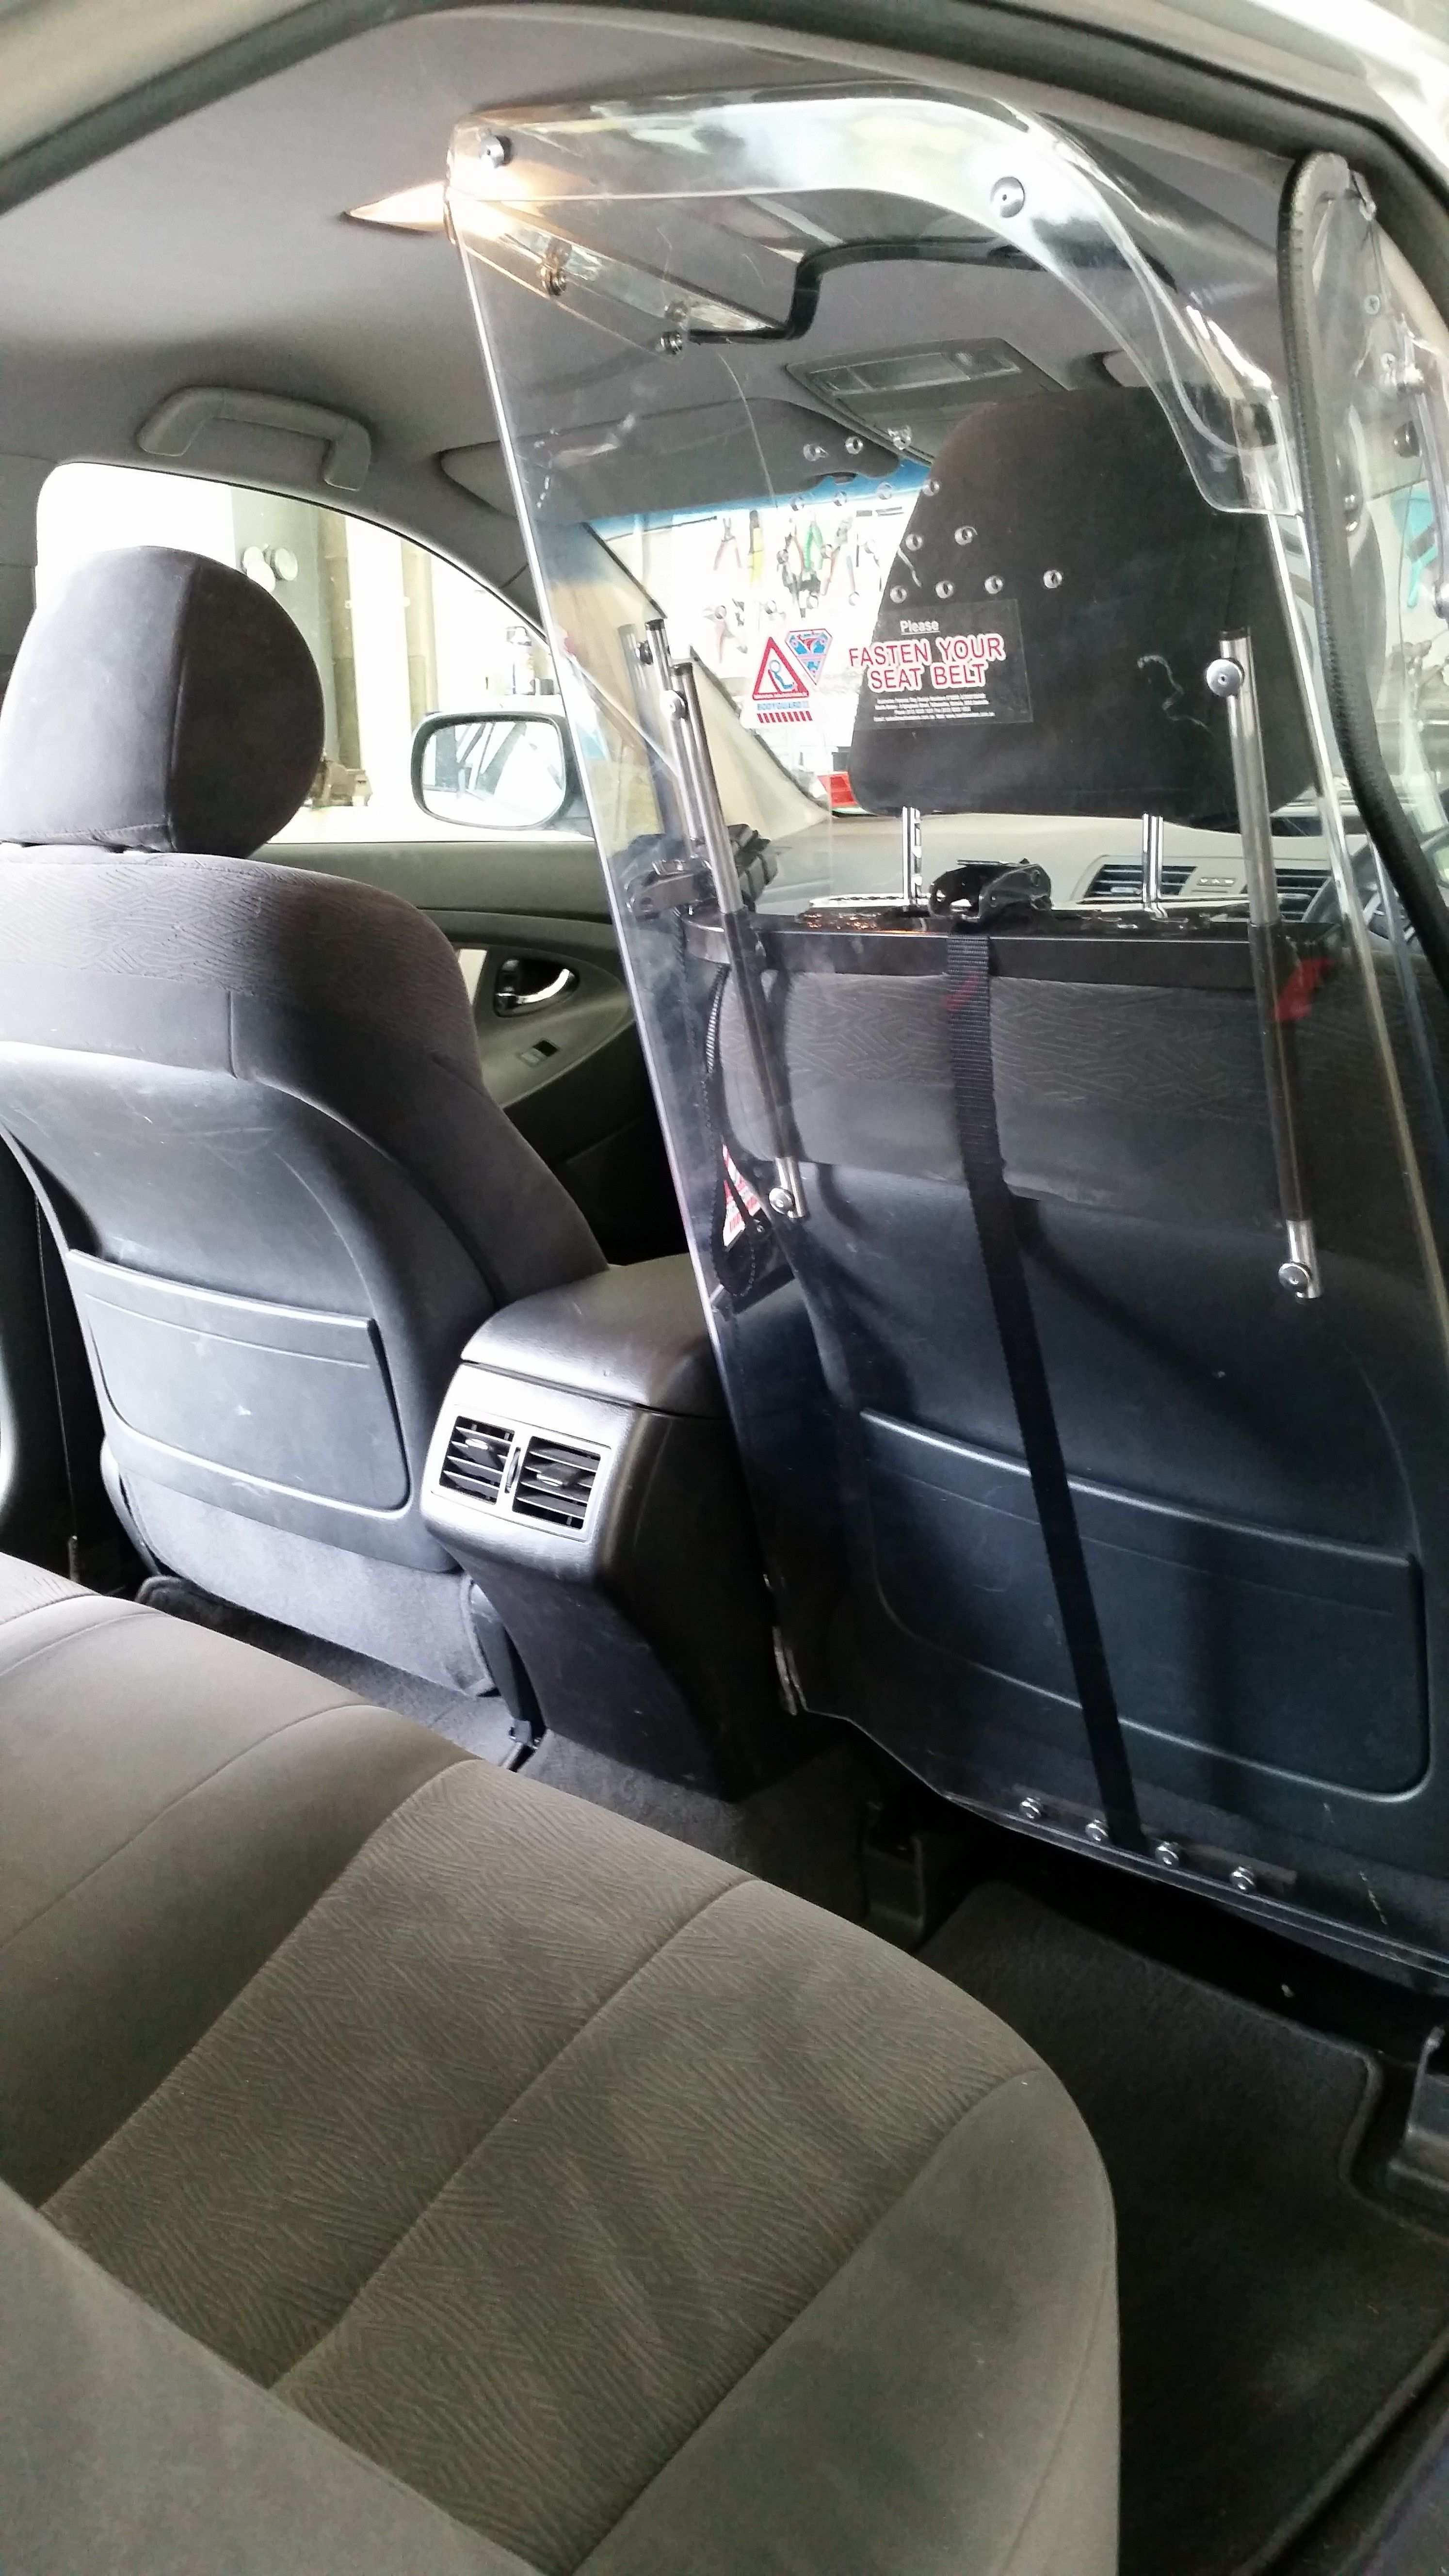 Martin Meters Bodyguard Ii Driver Protection Screen Fitted To 50 Series Toyota Camry Available From Www Ozcabstore Com Au Rideshare Taxi Taxi Driver